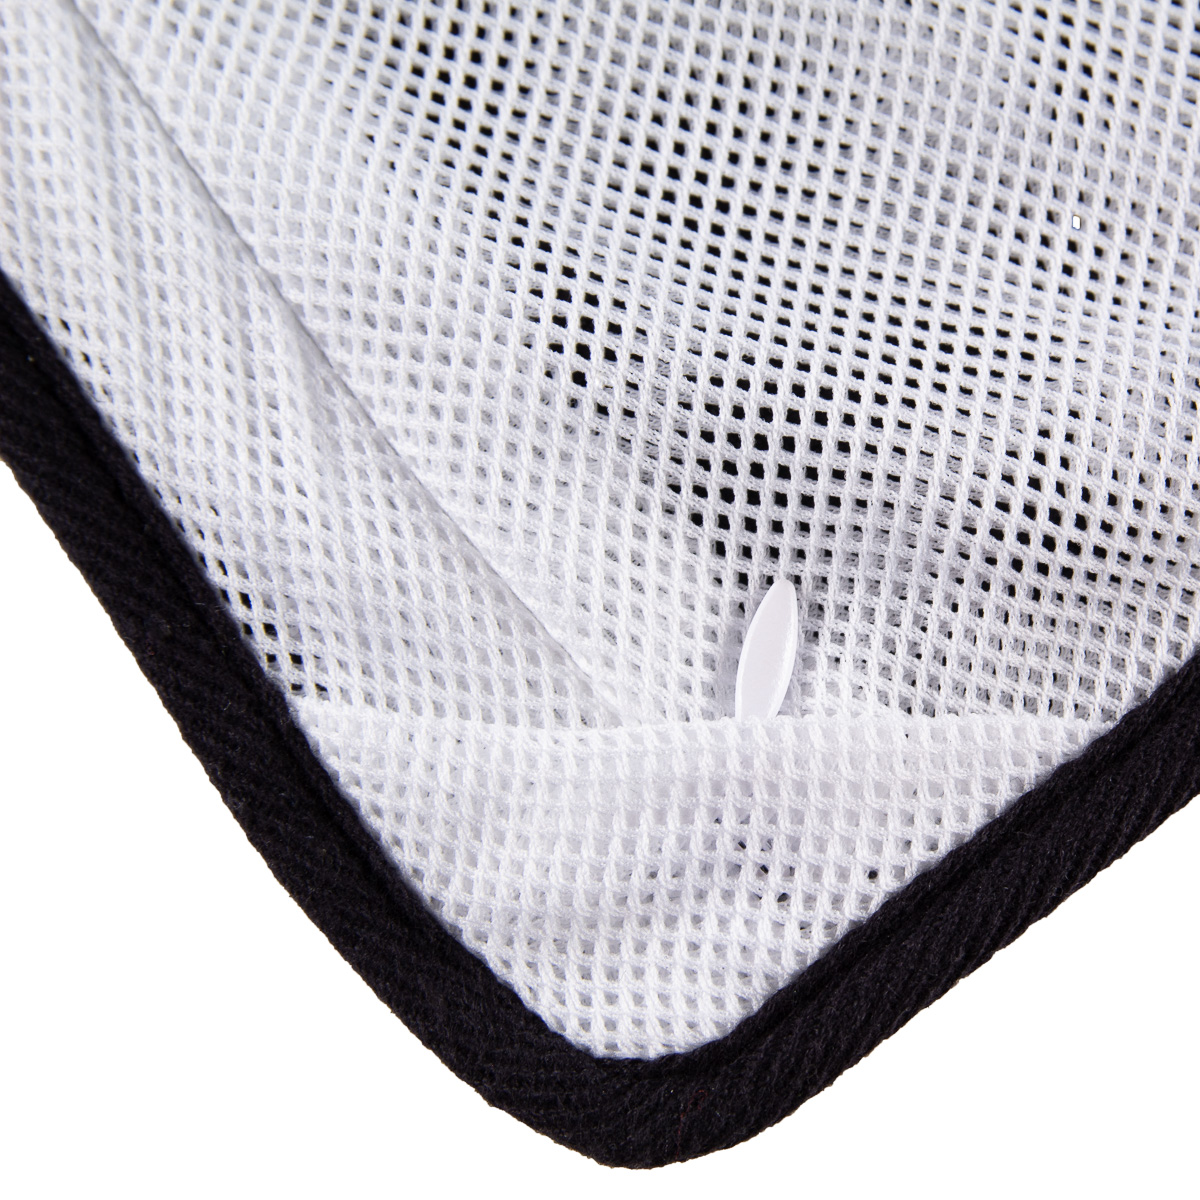 thumbnail 13 - Antibacterial-Gym-Towel-Fits-Securely-Over-Workout-Bench-Phone-Keys-Zip-Pocket